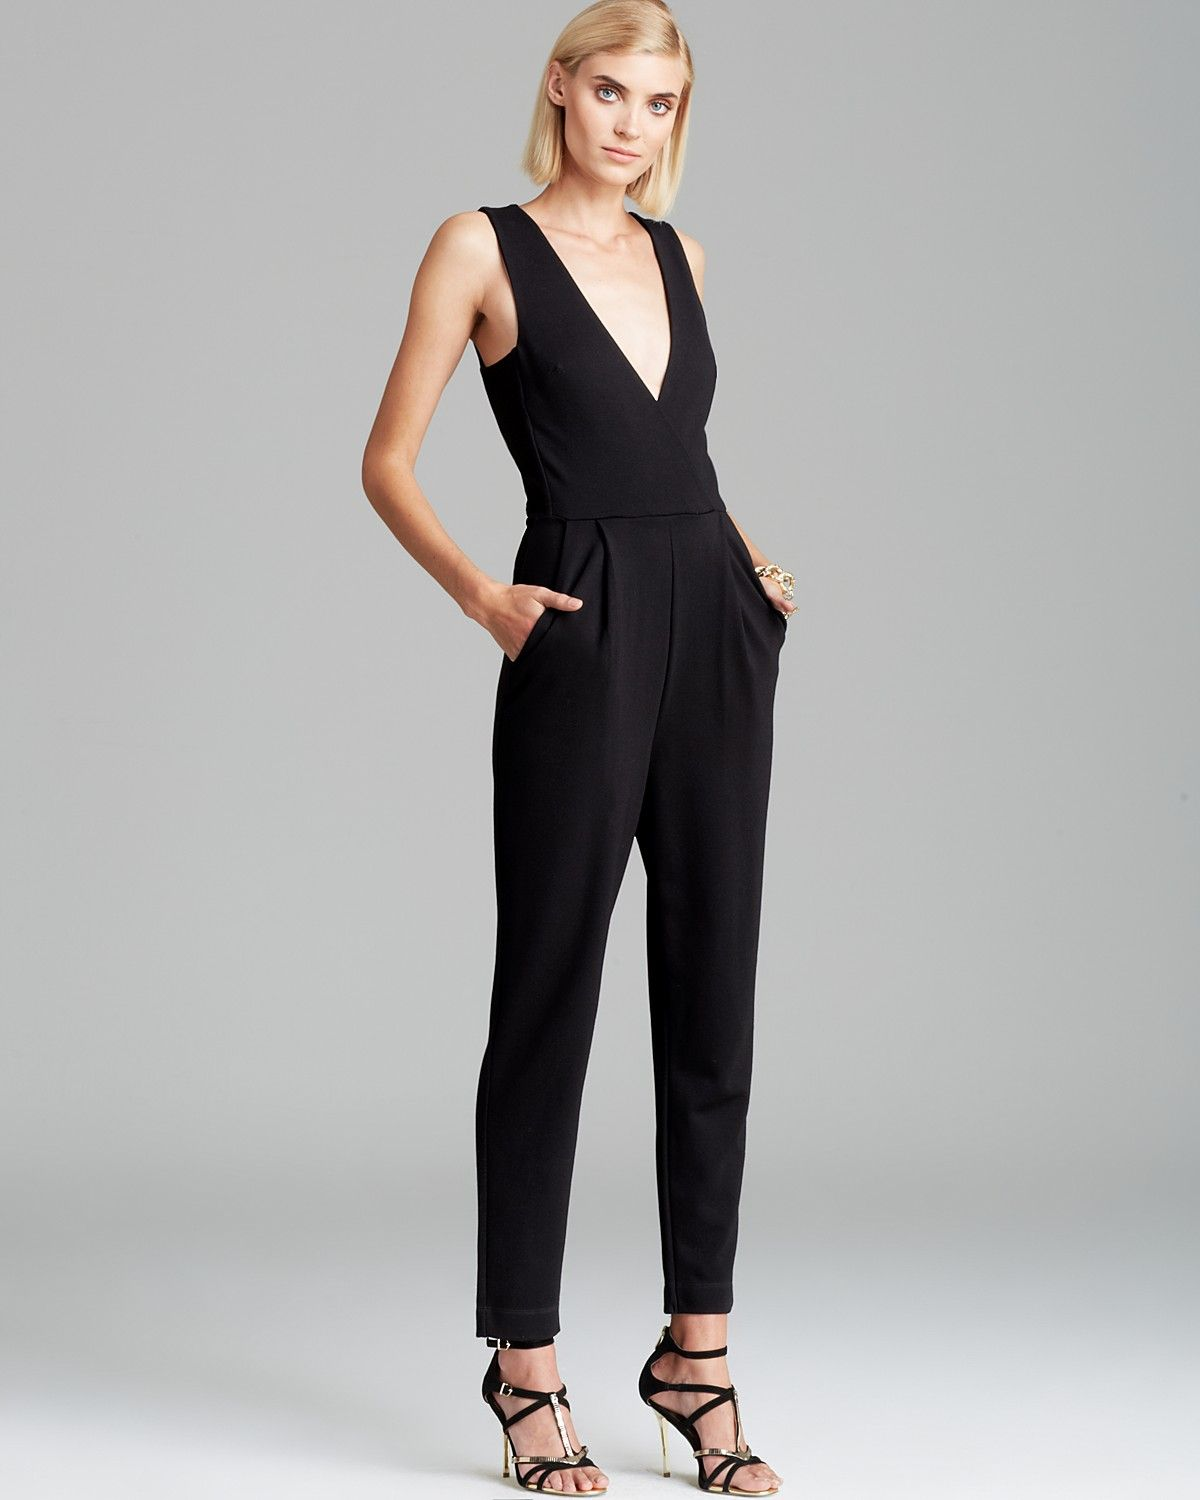 38e816a9c874 FRENCH CONNECTION Jumpsuit - Marie